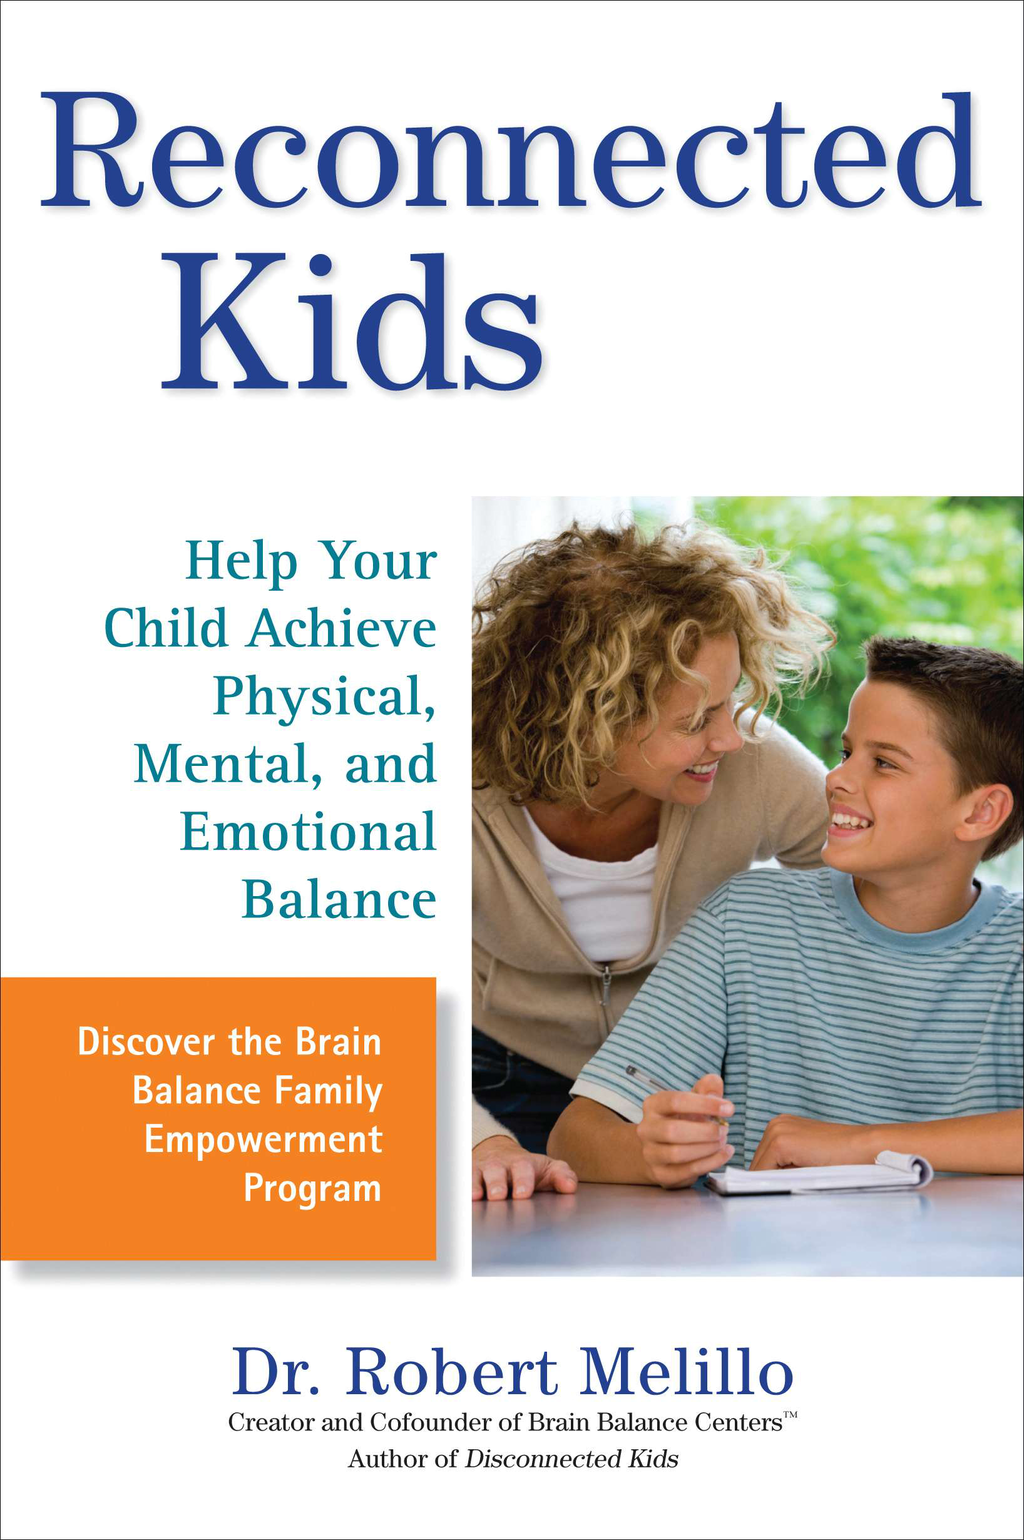 Reconnected Kids: Help Your Child Achieve Physical, Mental, and Emotional Balance By: Dr. Robert Melillo